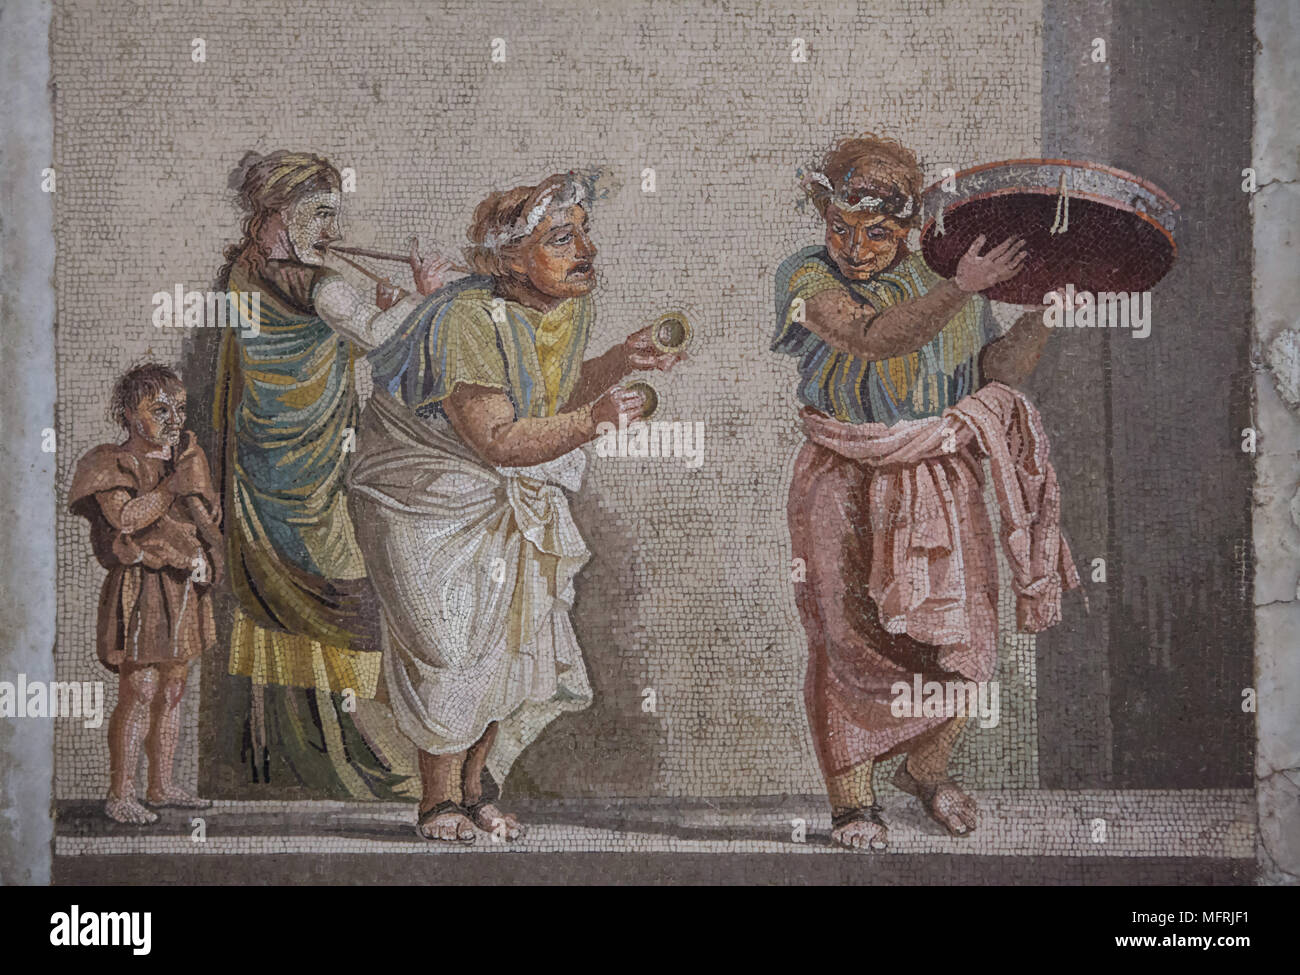 Comedy scene depicted in the Roman mosaic from Villa de Cicero (Villa of Cicero) in Pompeii, now on display in the National Archaeological Museum (Museo Archeologico Nazionale di Napoli) in Naples, Campania, Italy. Street musicians are depicted playing musical instruments often connected with the cult of Cybele: tambourine, small cymbals and double flute (tibia). The mosaic depicts an episode from a comedy, since the figures are wearing theatrical masks. Stock Photo